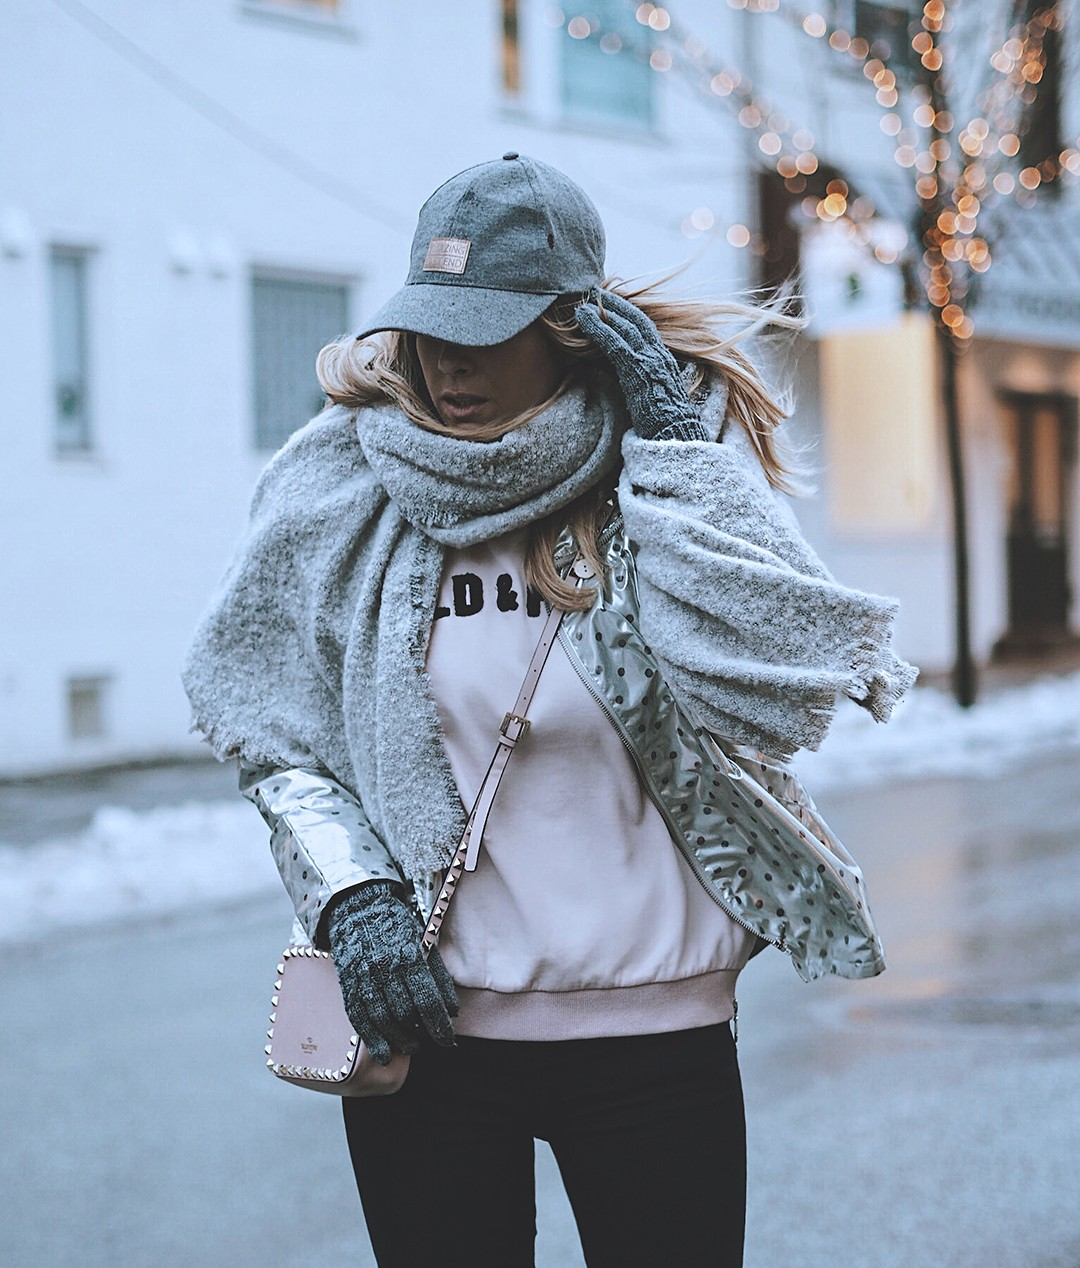 Silver-Jacket-fashion-blog-Winter-outfit-fashion-blogger-sneakers-jeans-2017IMG_6476